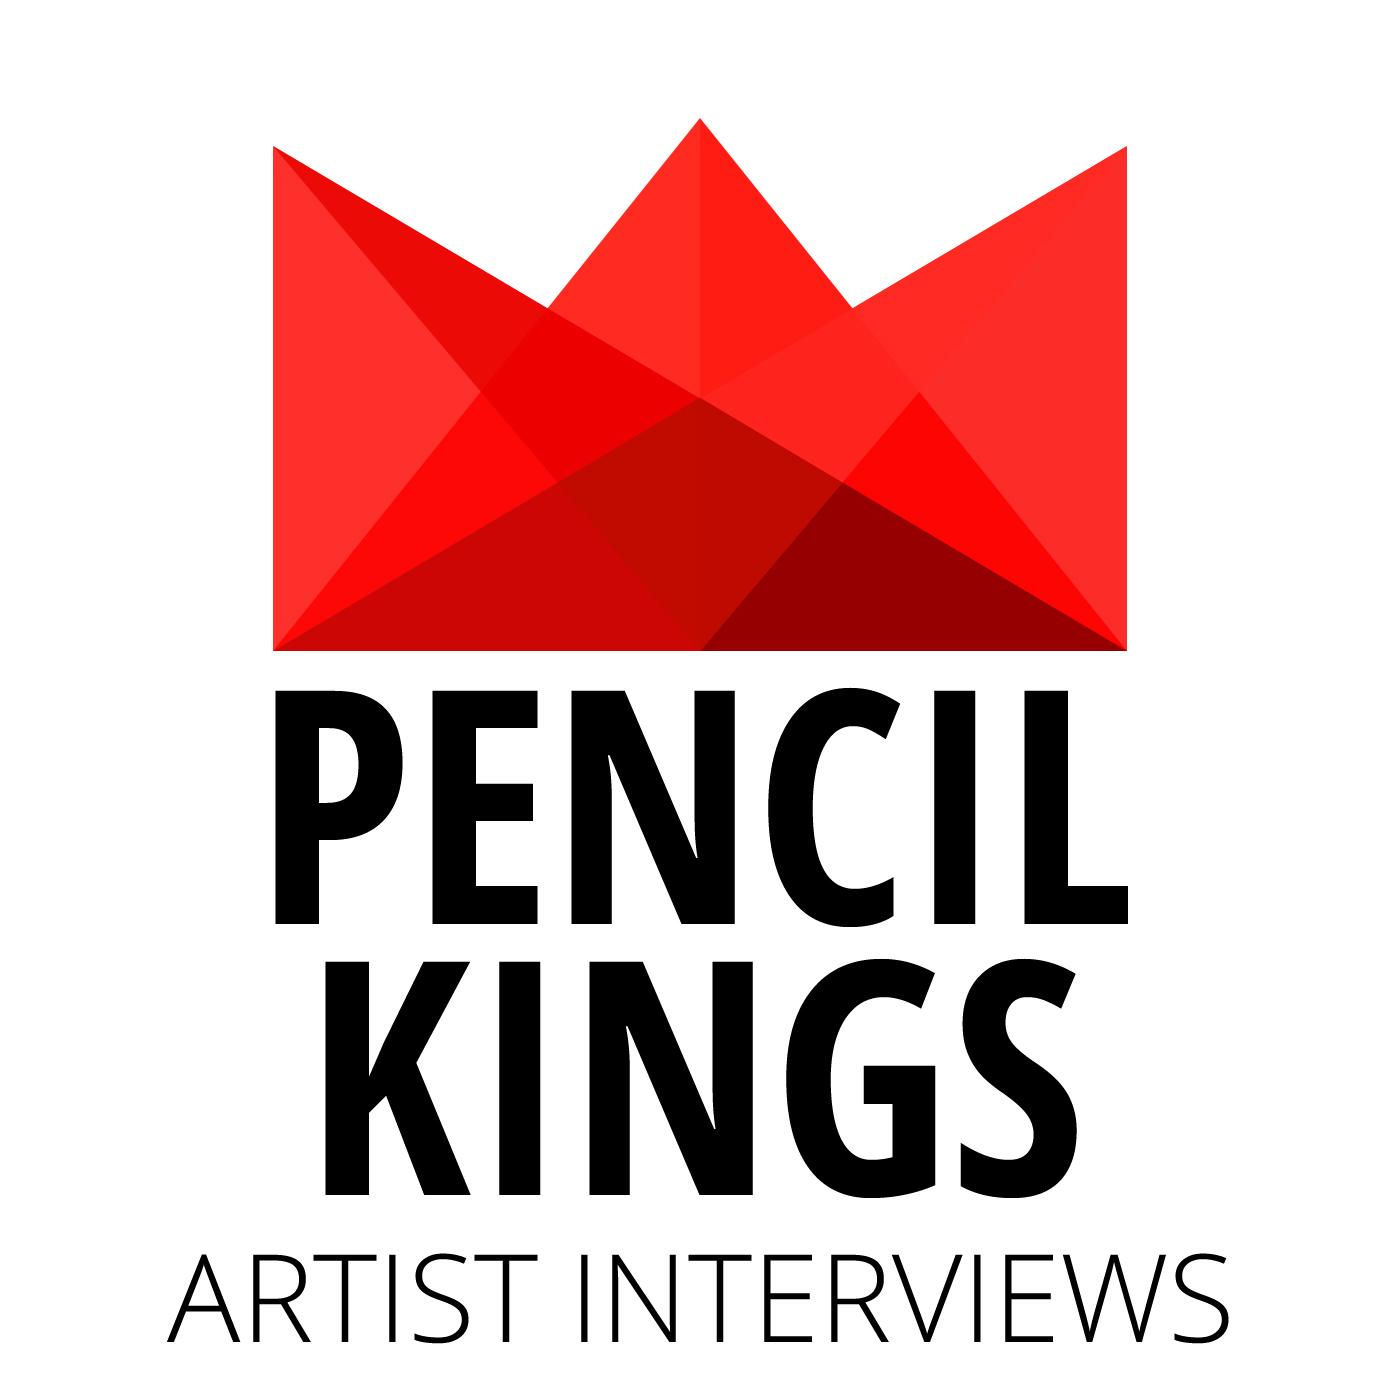 Pencil Kings | Inspiring Artist Interviews with Today's Best Artists show art